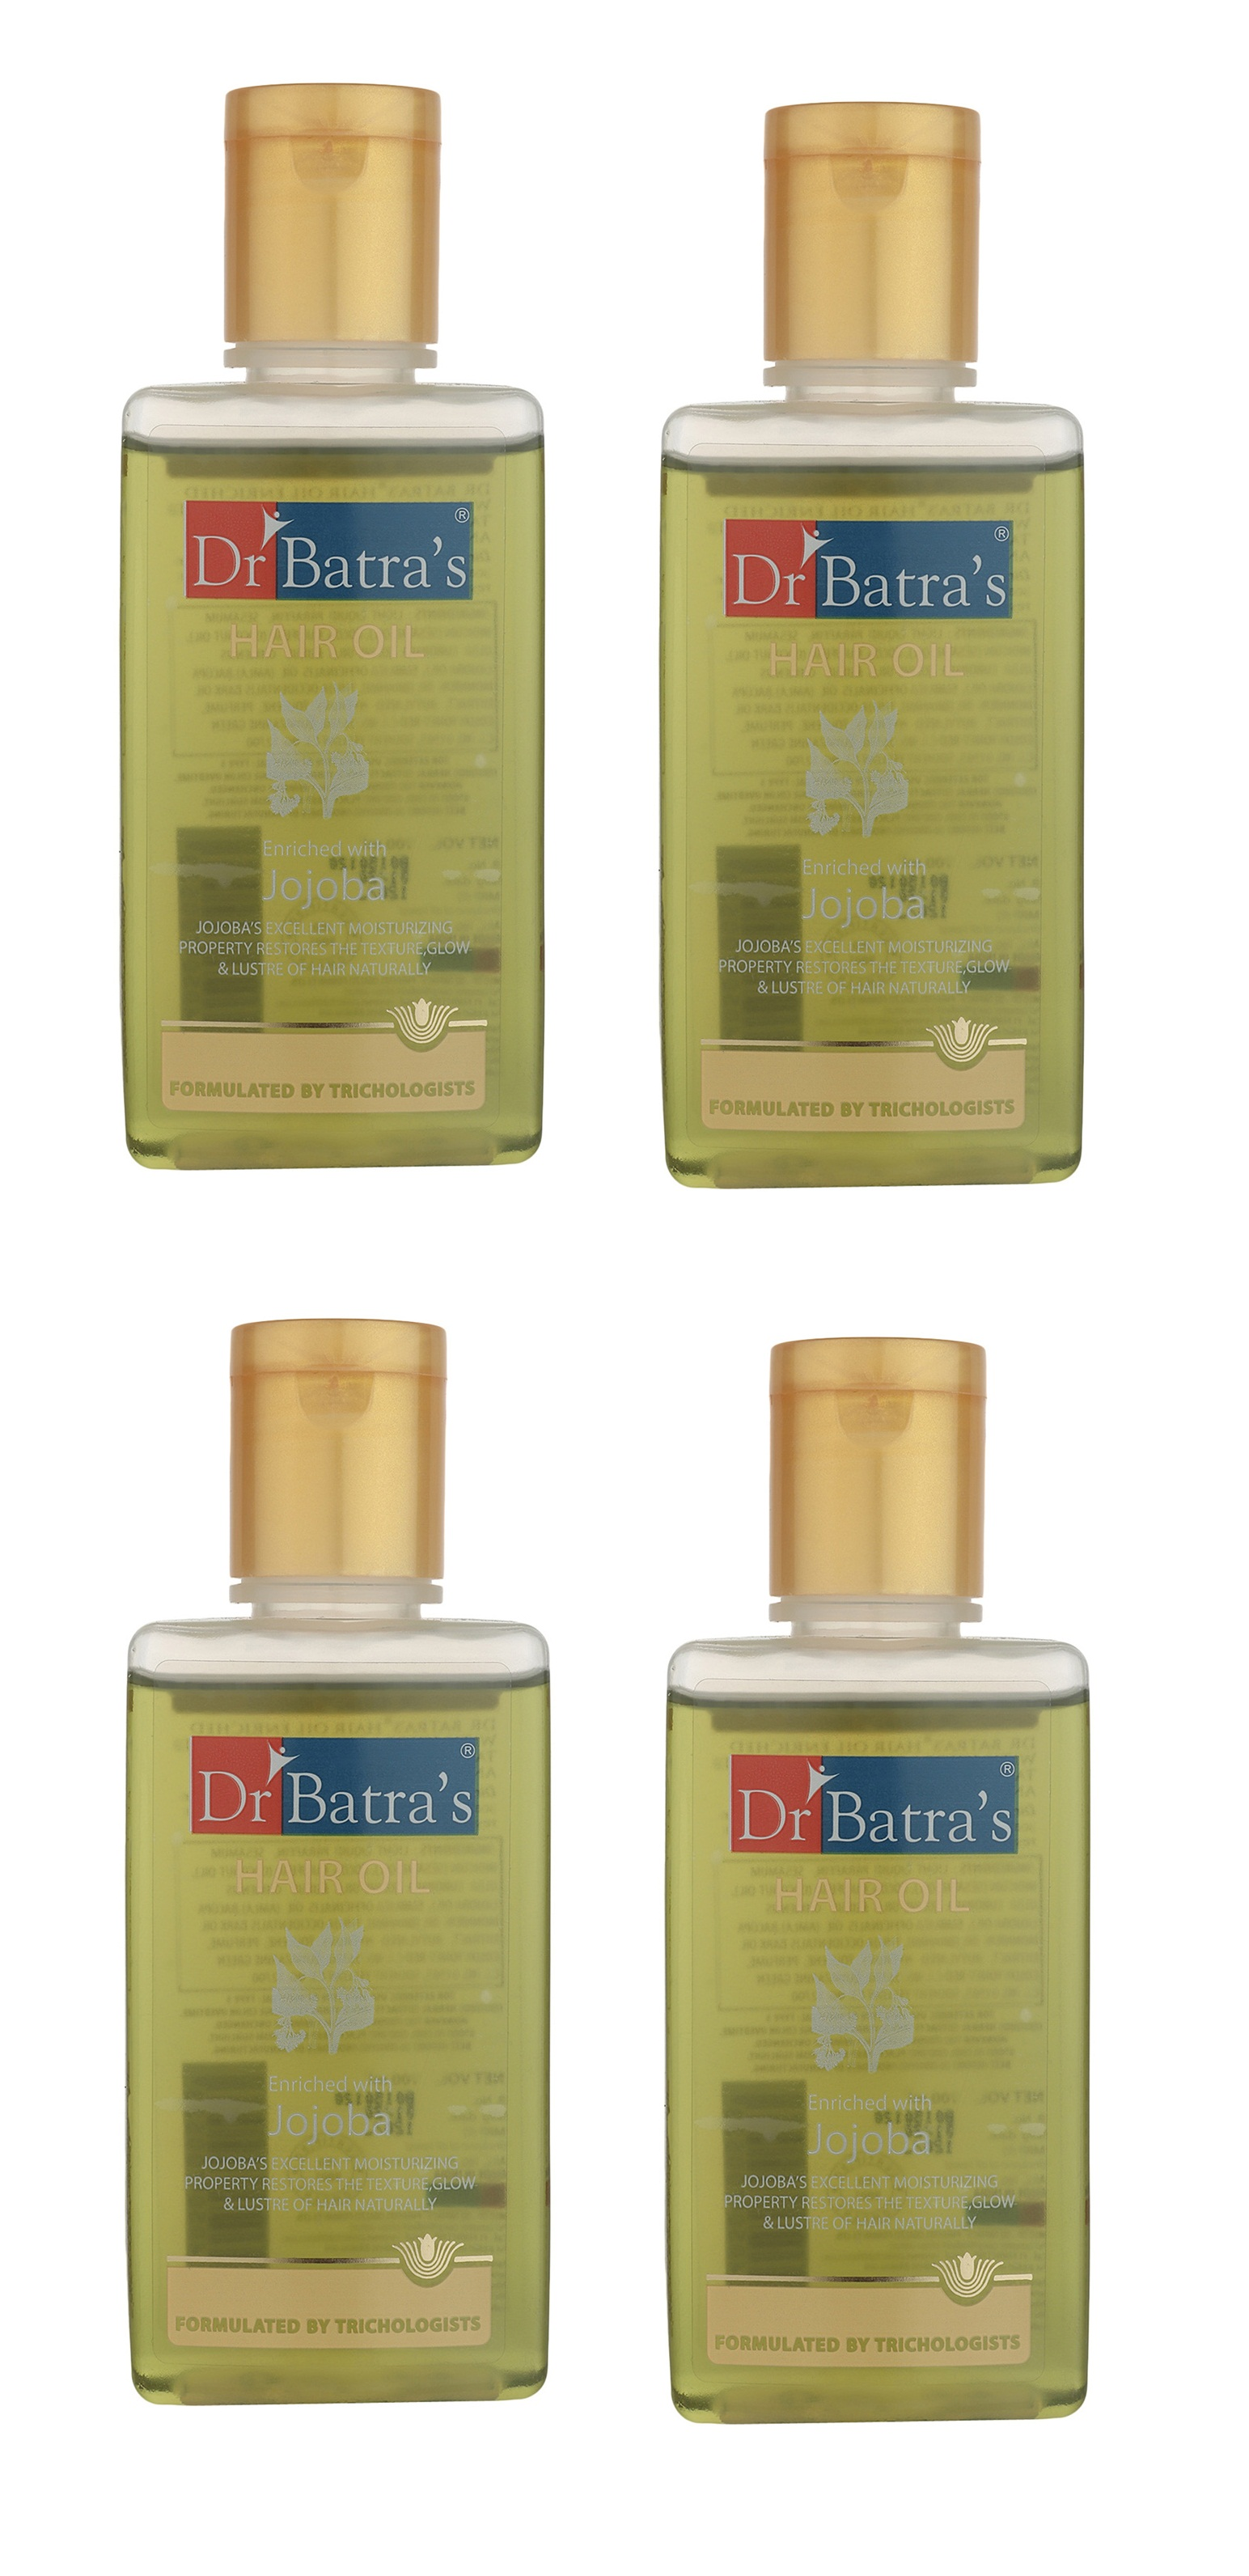 Dr Batra's | Dr Batra's Hair Oil Enriched With Jojoba - 100 ml (Pack of 4)